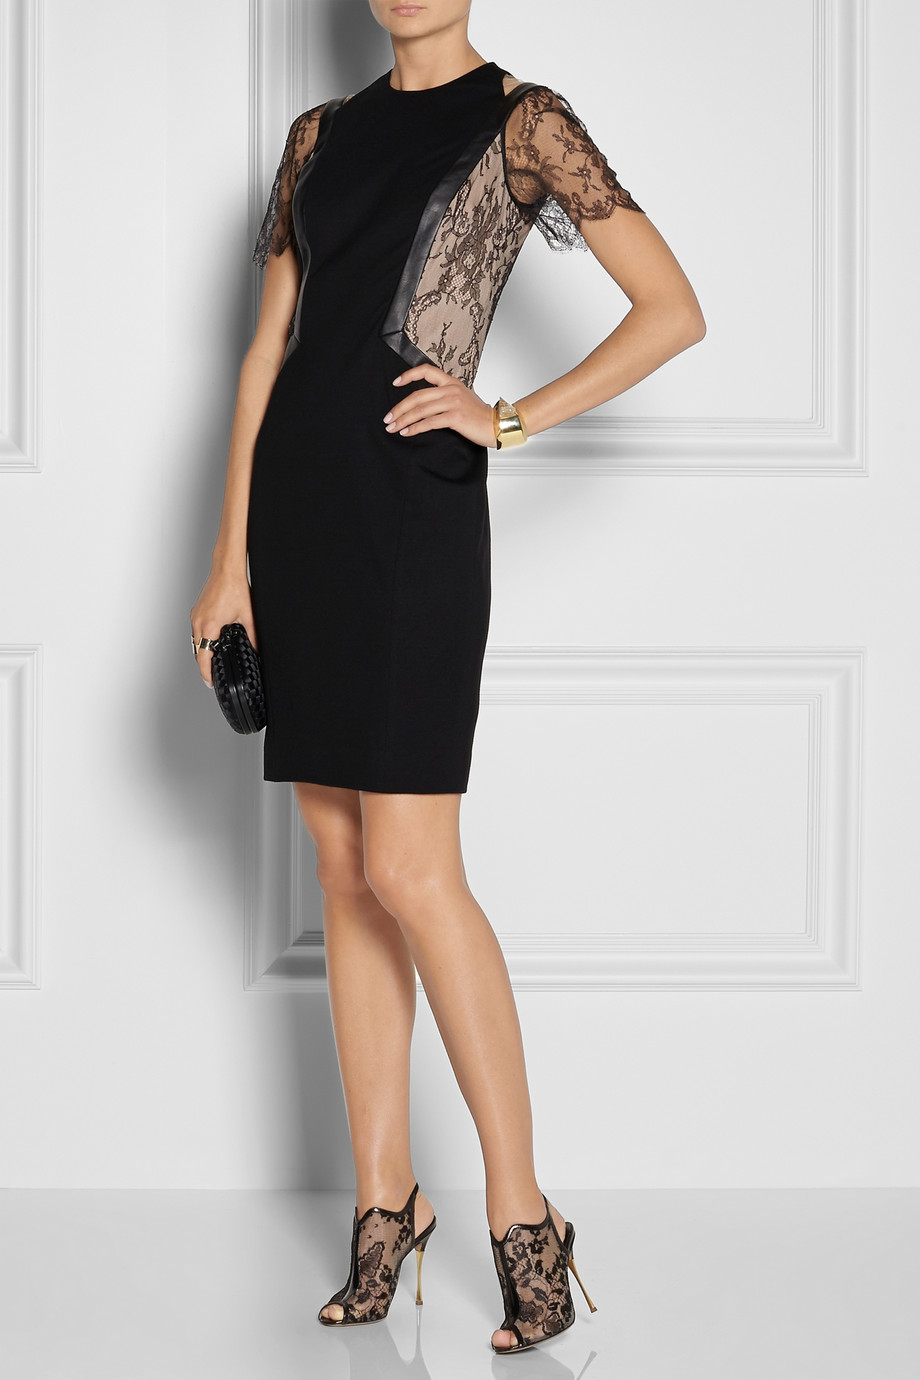 JASON WU Leather And Lace Trimmed Stretch Ponte Dress buy HERE